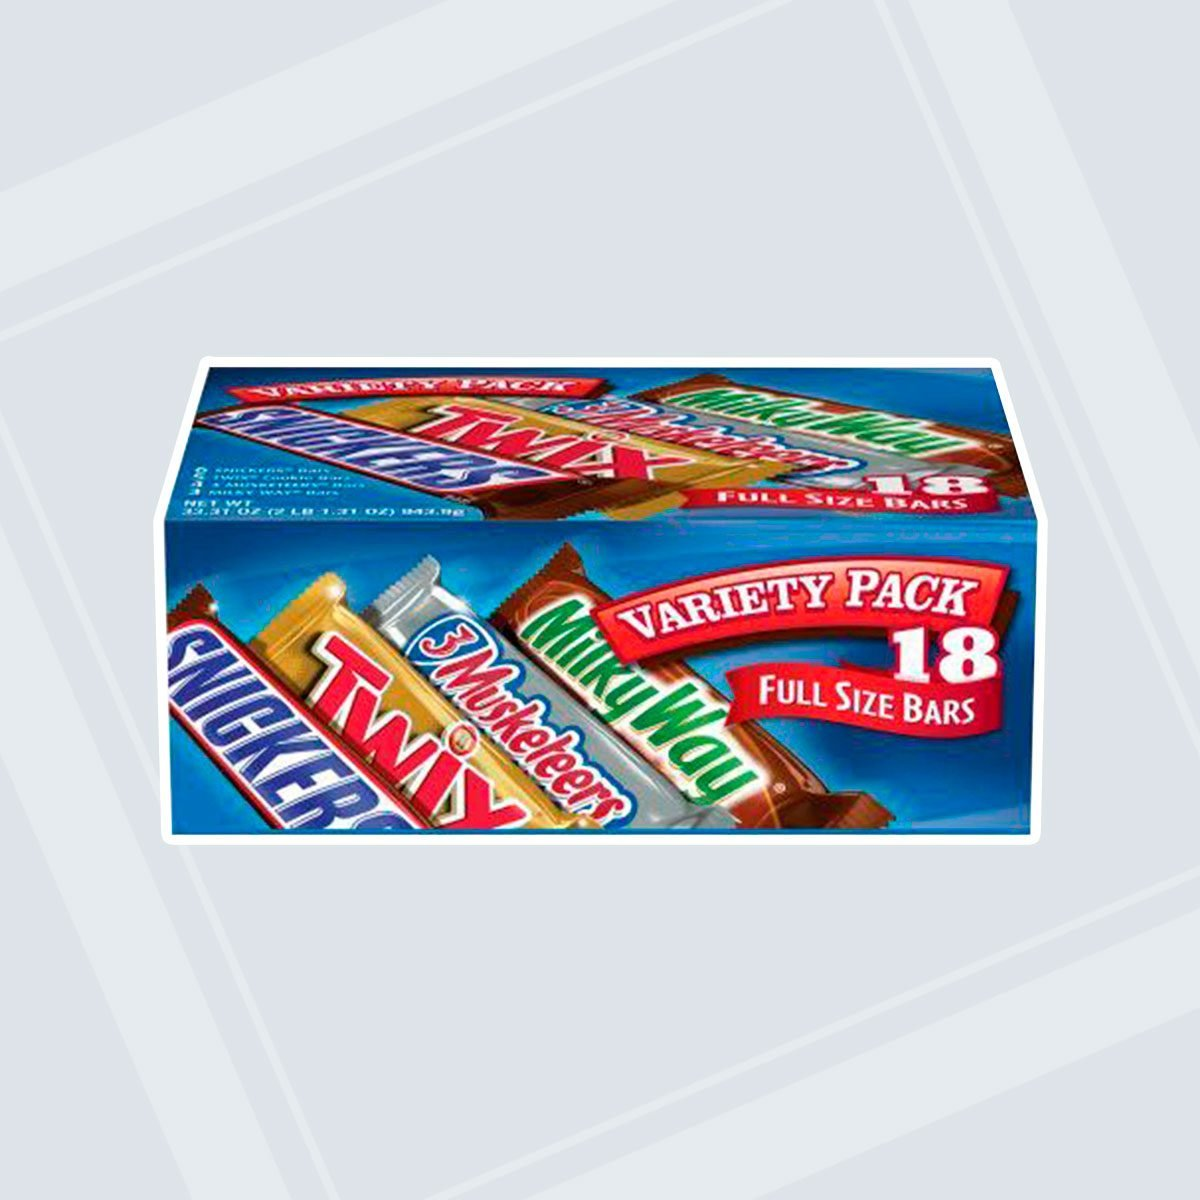 Mars full-size candy bars, variety pack